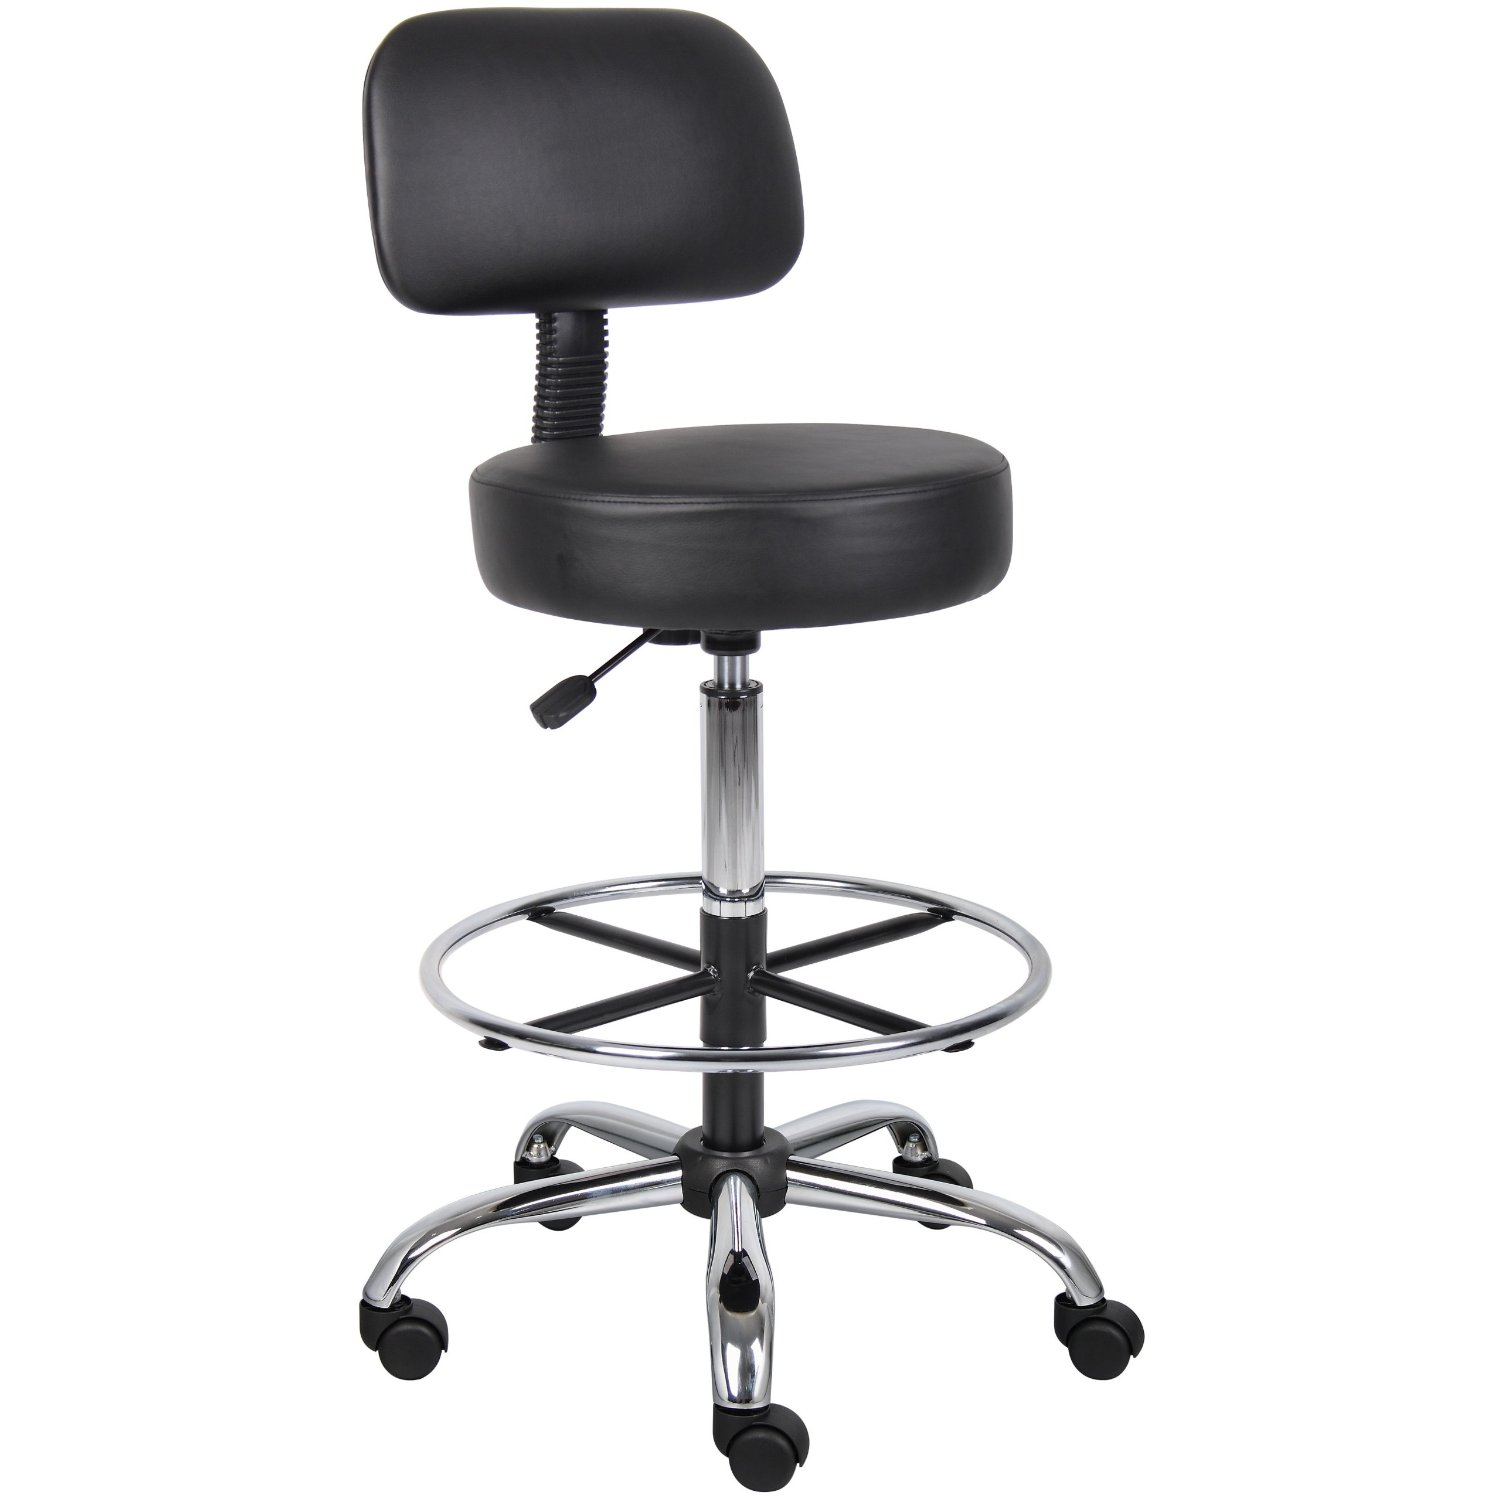 boss_caressoft_drafting_stool_standing_desk_chair